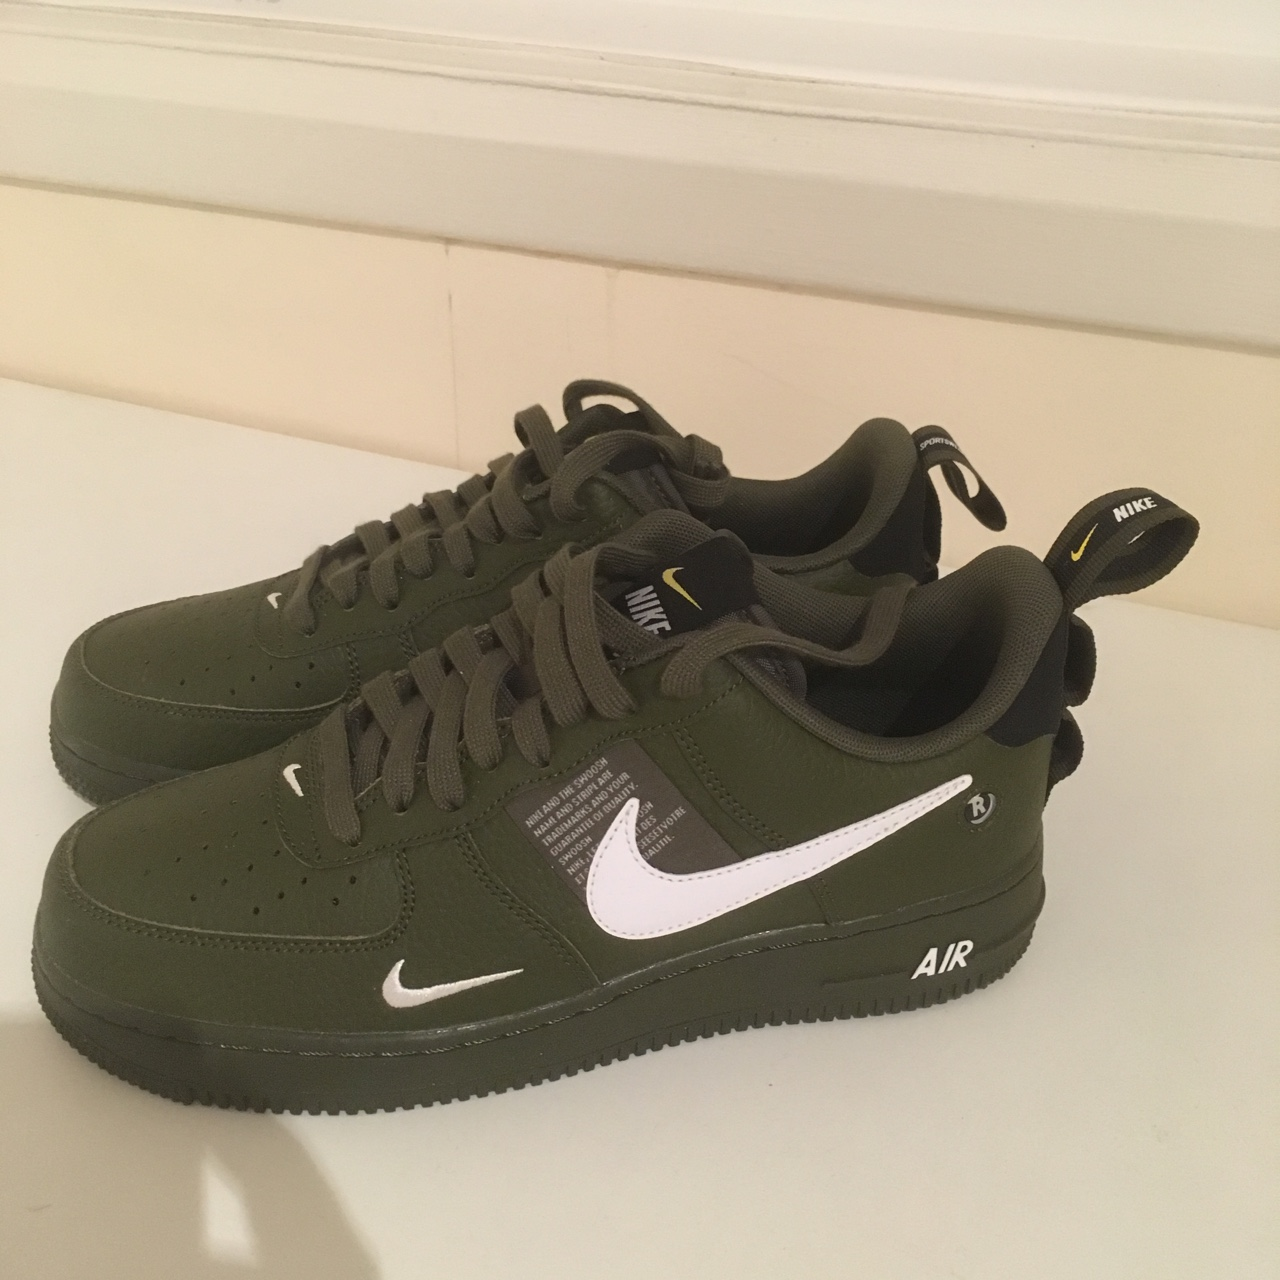 capitalismo Bocadillo despierta  Nike Air Force 1 '07 LV8 Utility Olive Green. Brand... - Depop